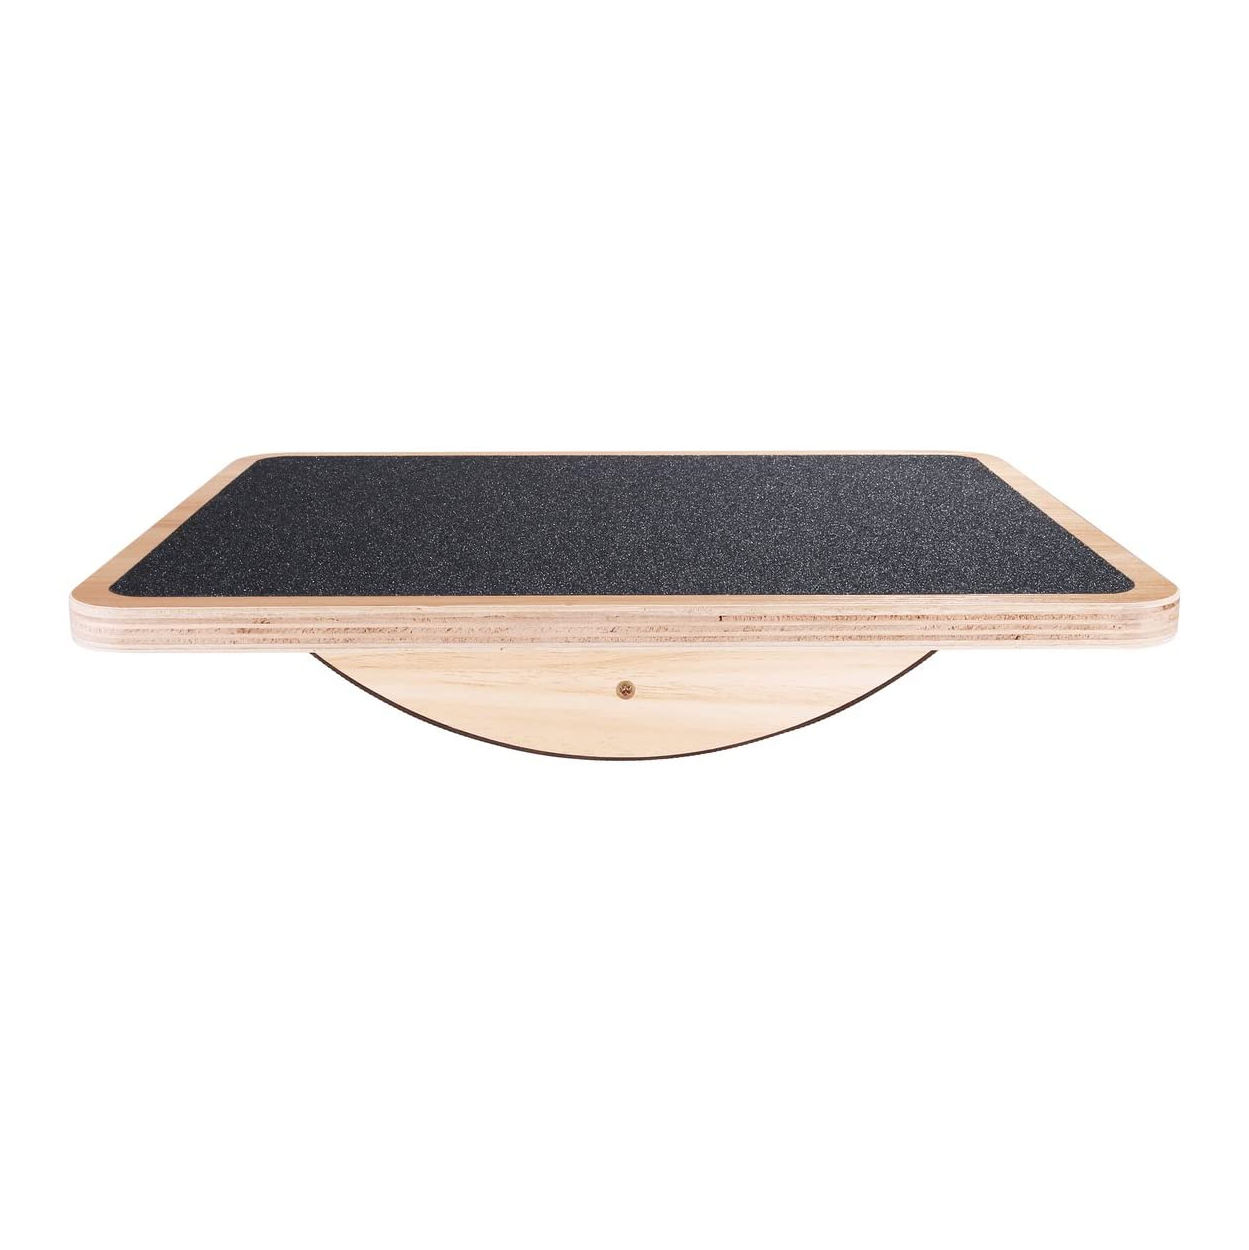 Professional fitness yoga fit anti slip rectangle wooden wobble balance board